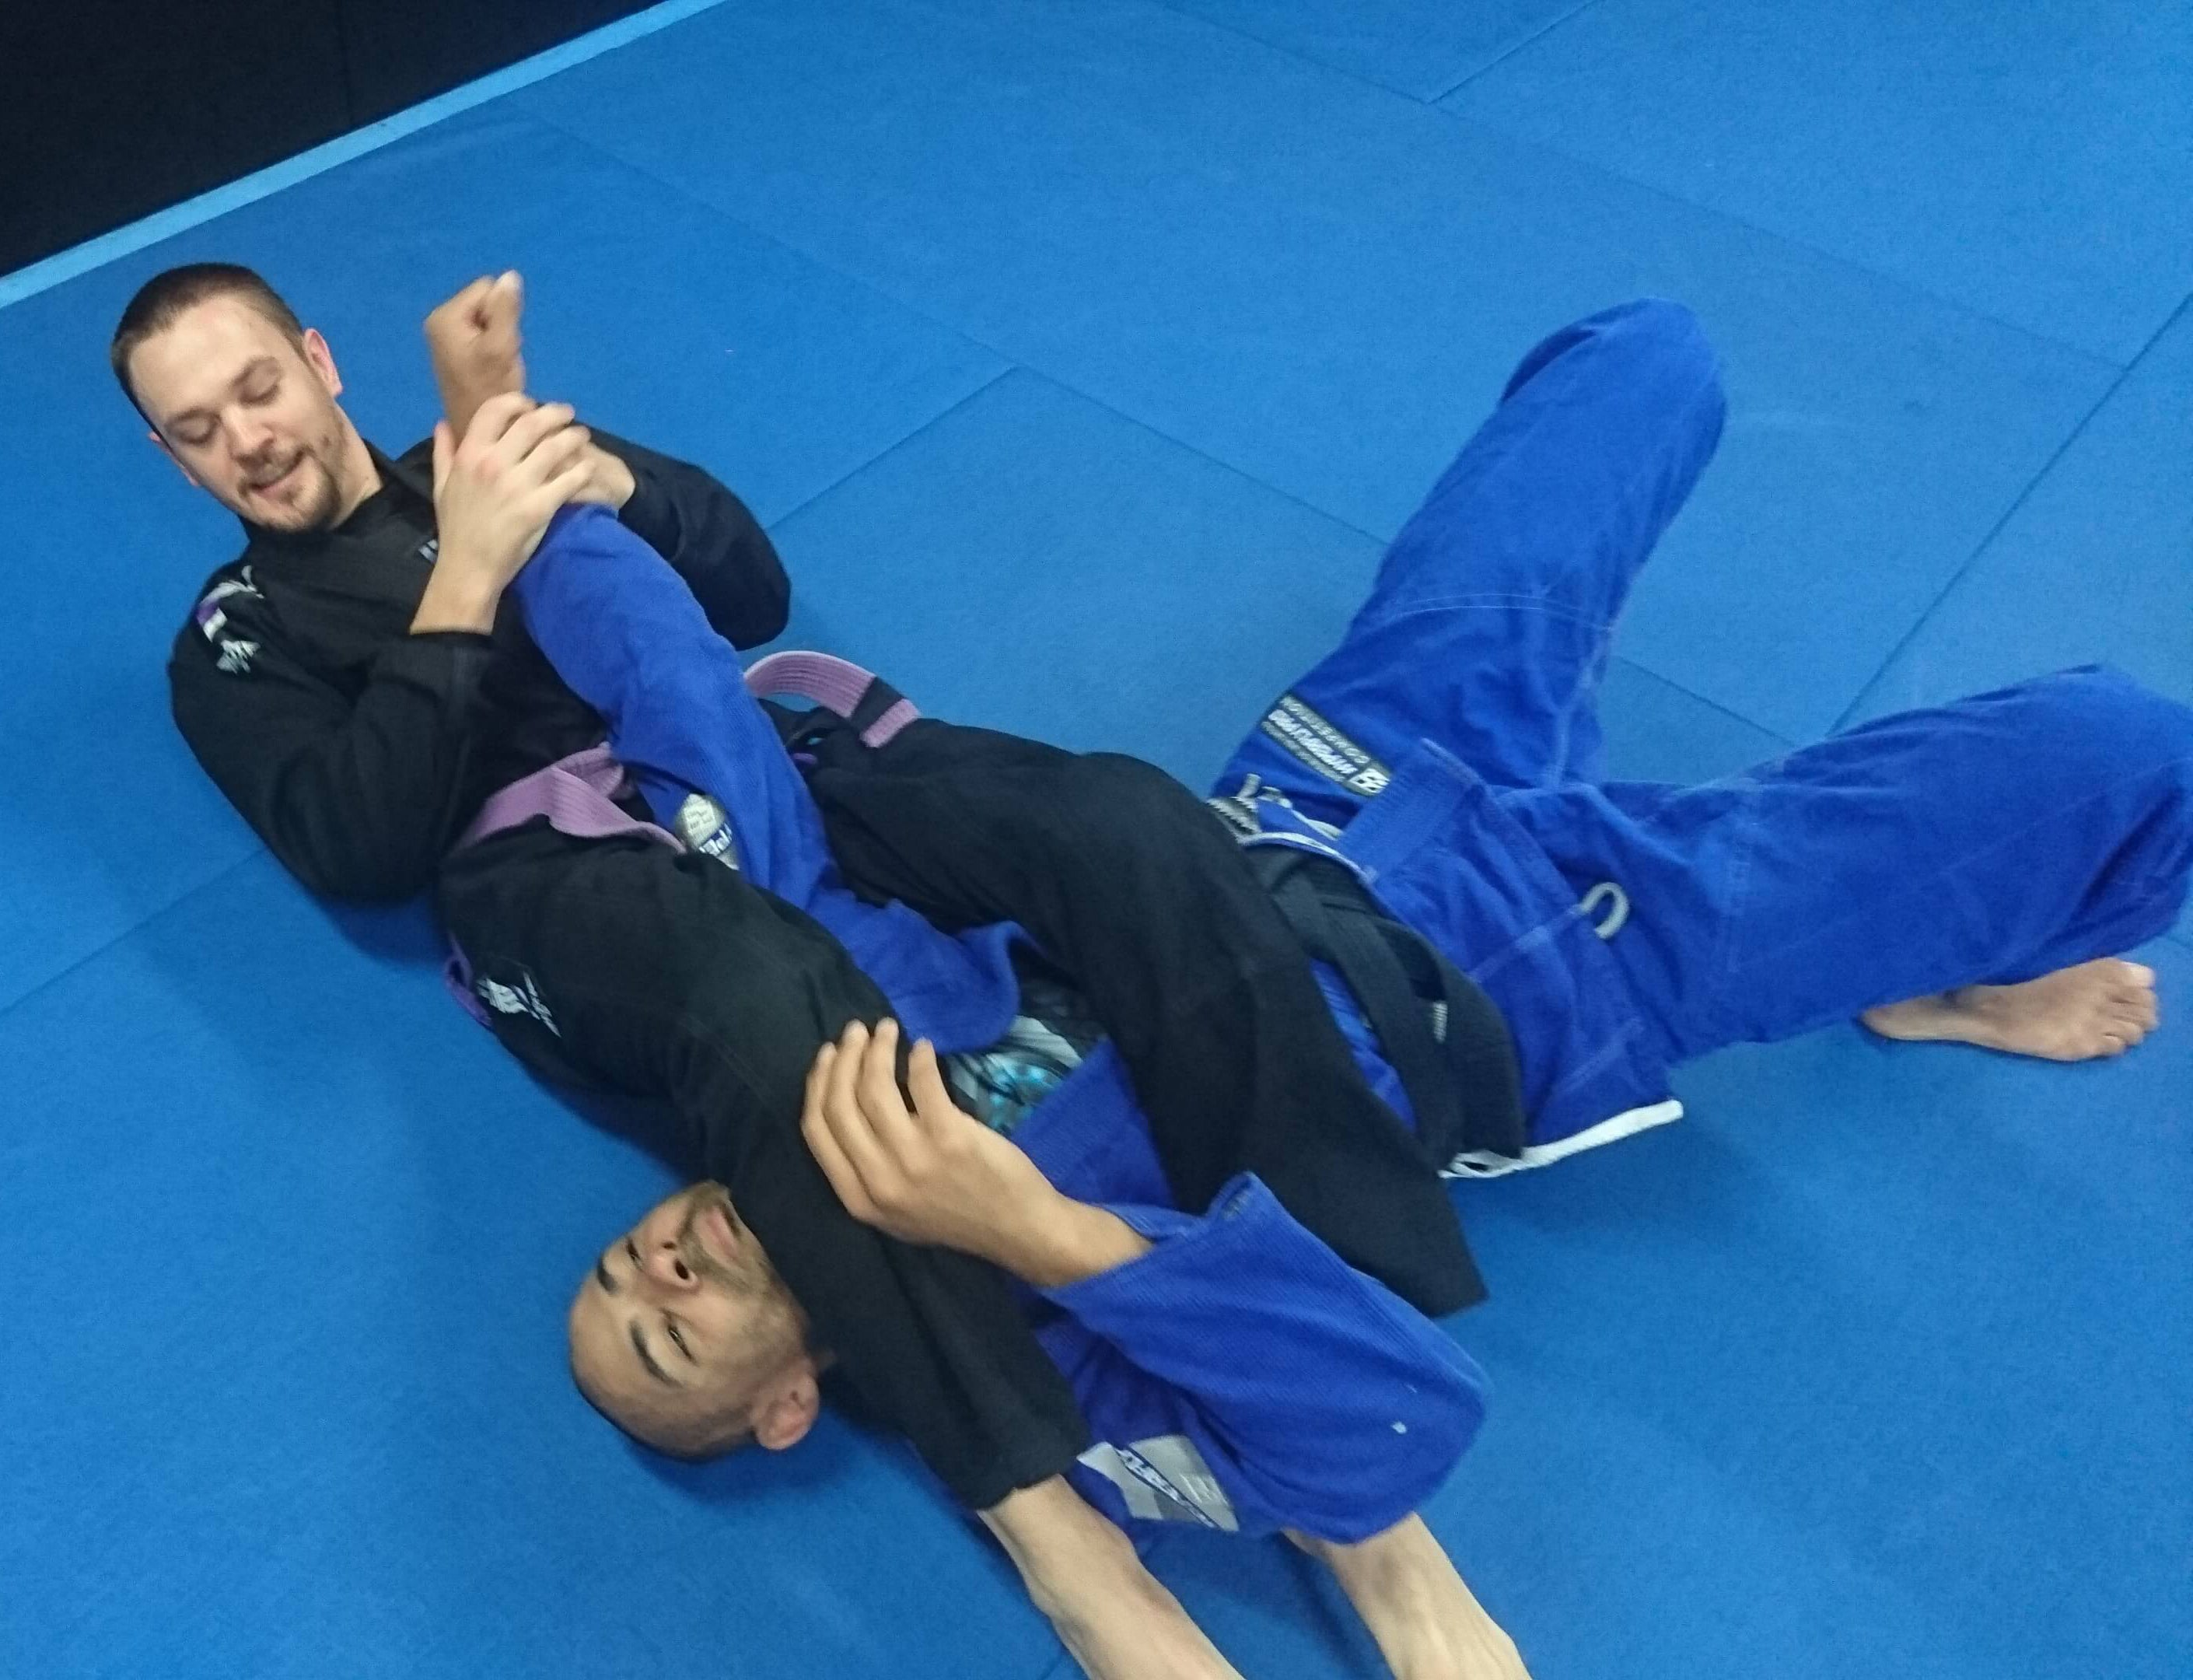 Elite sports Team Elite BJJ Shaun Steven Harrison image4.jpg